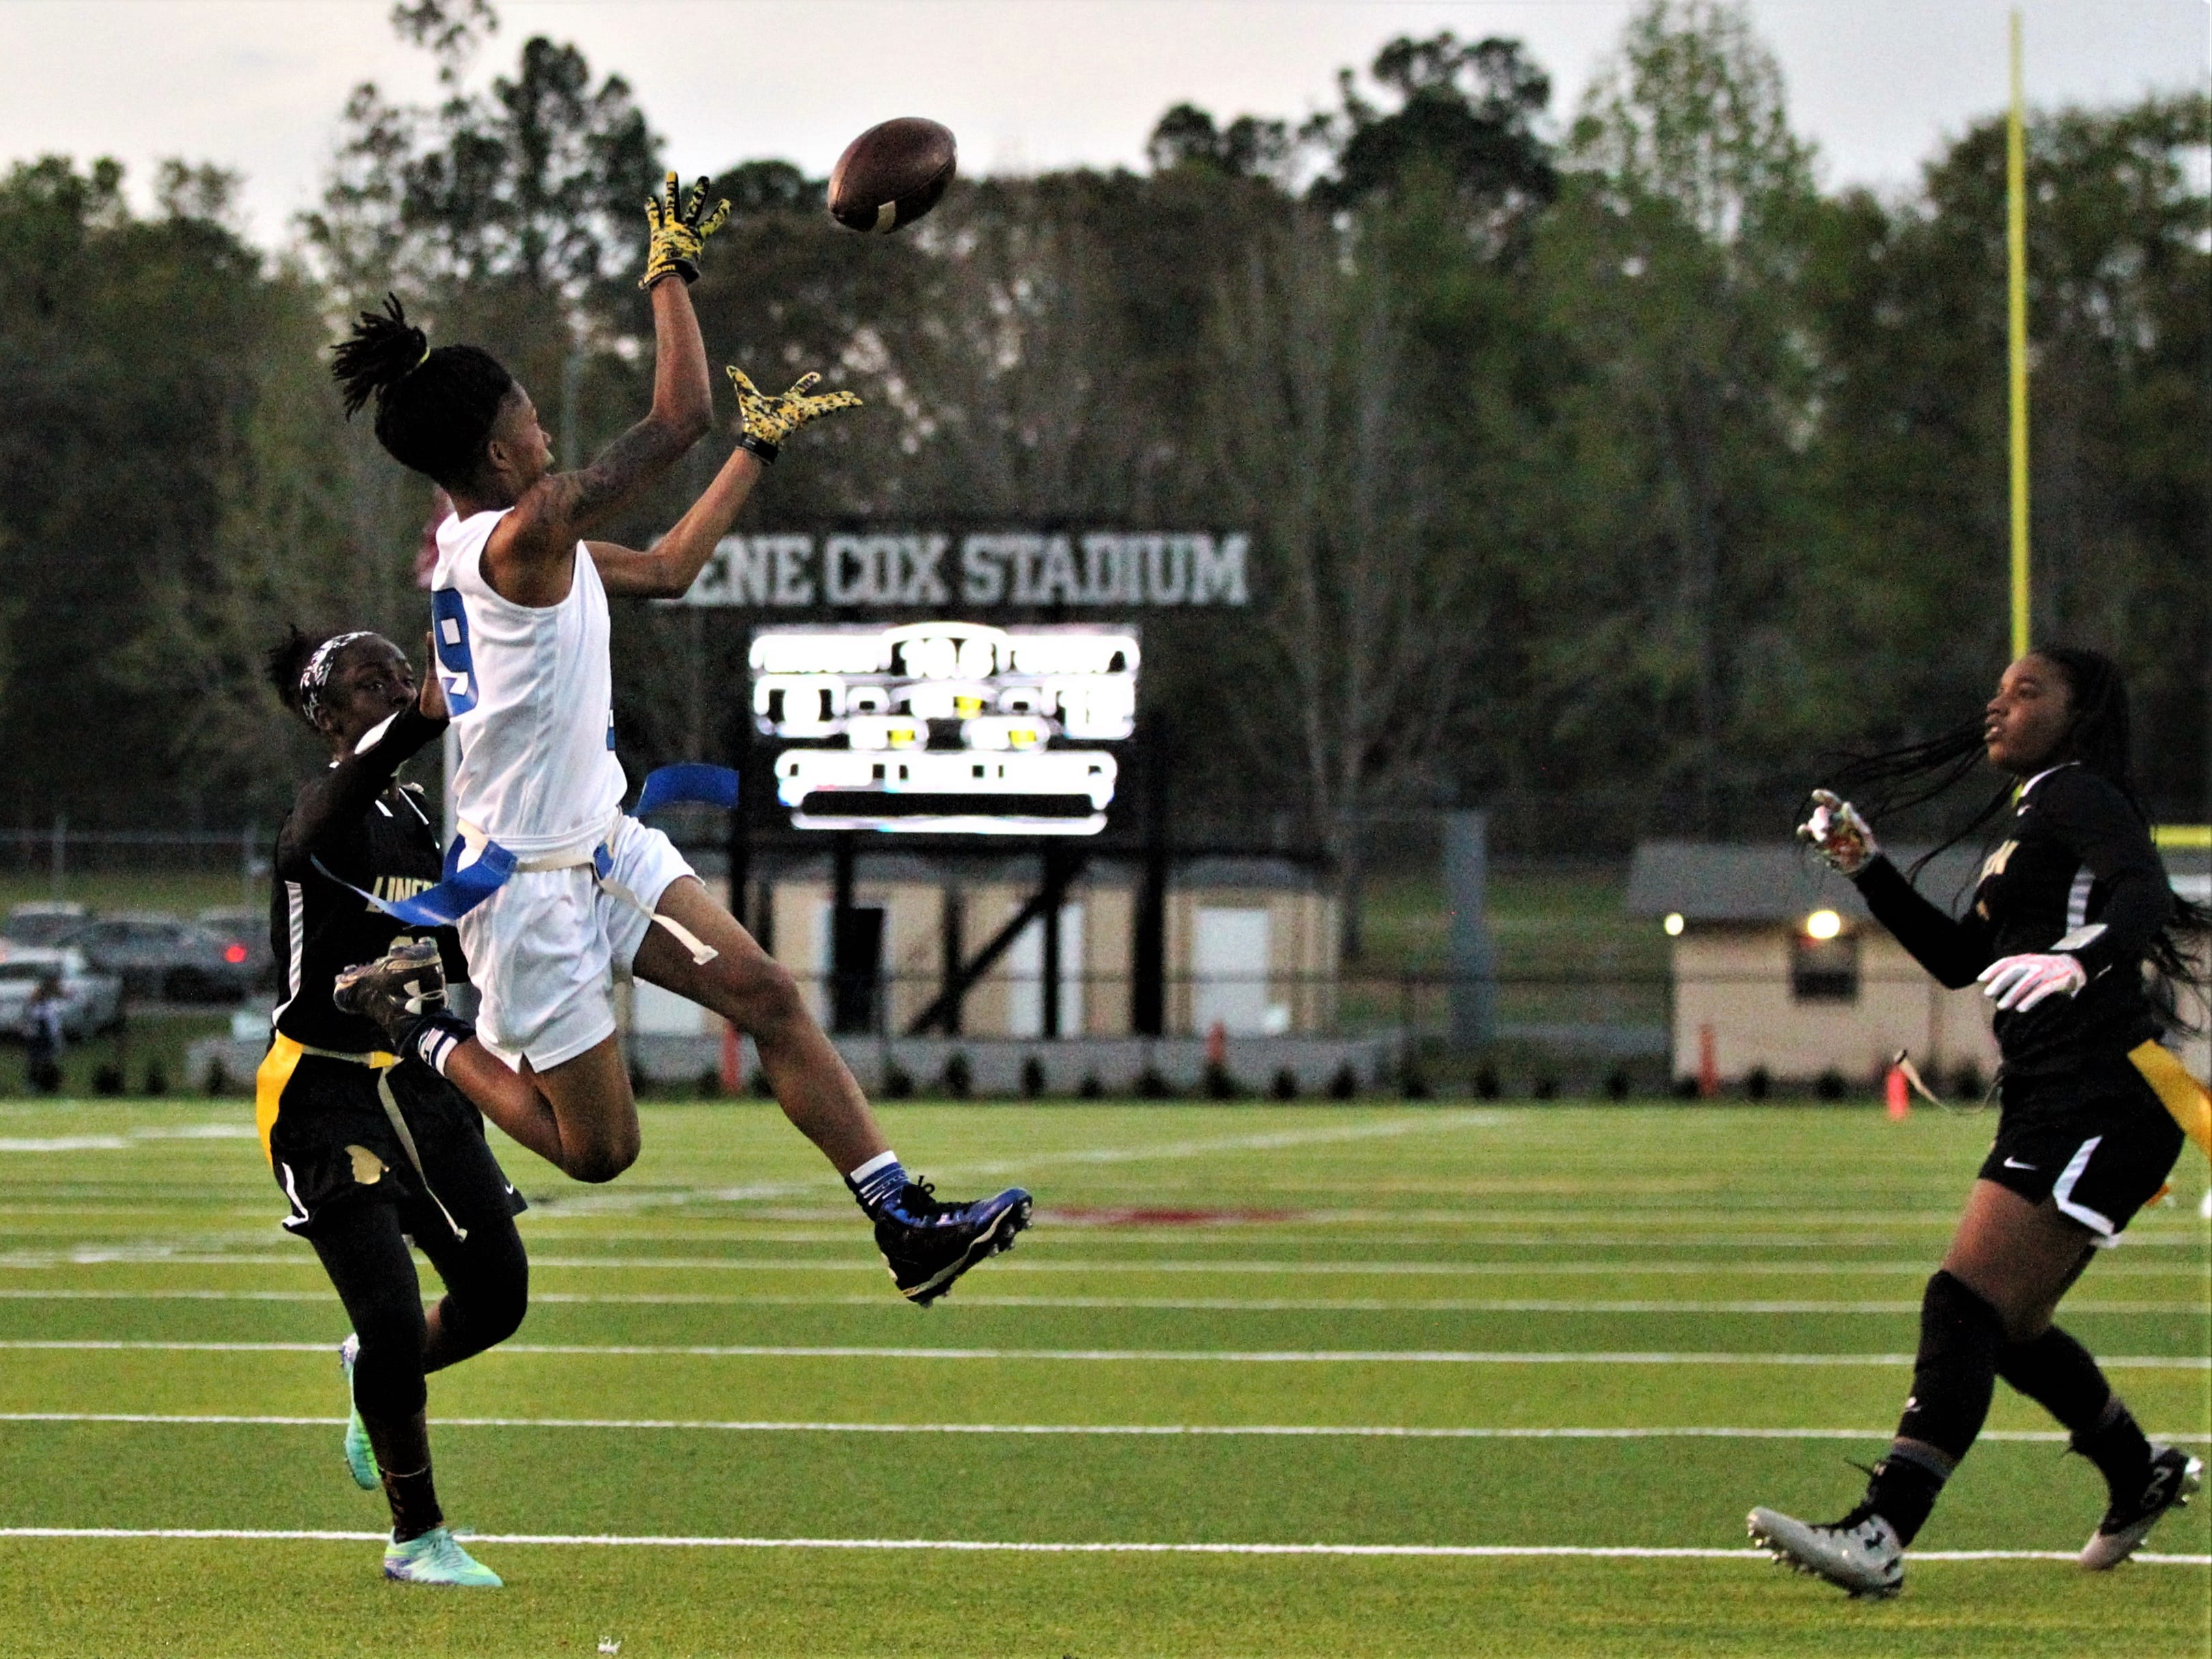 Godby sophomore receiver Toni McClain makes a leaping 13-yard touchdown catch down the seam as Godby's flag football team beat Lincoln 25-6 at Gene Cox Stadium on March 14, 2019.